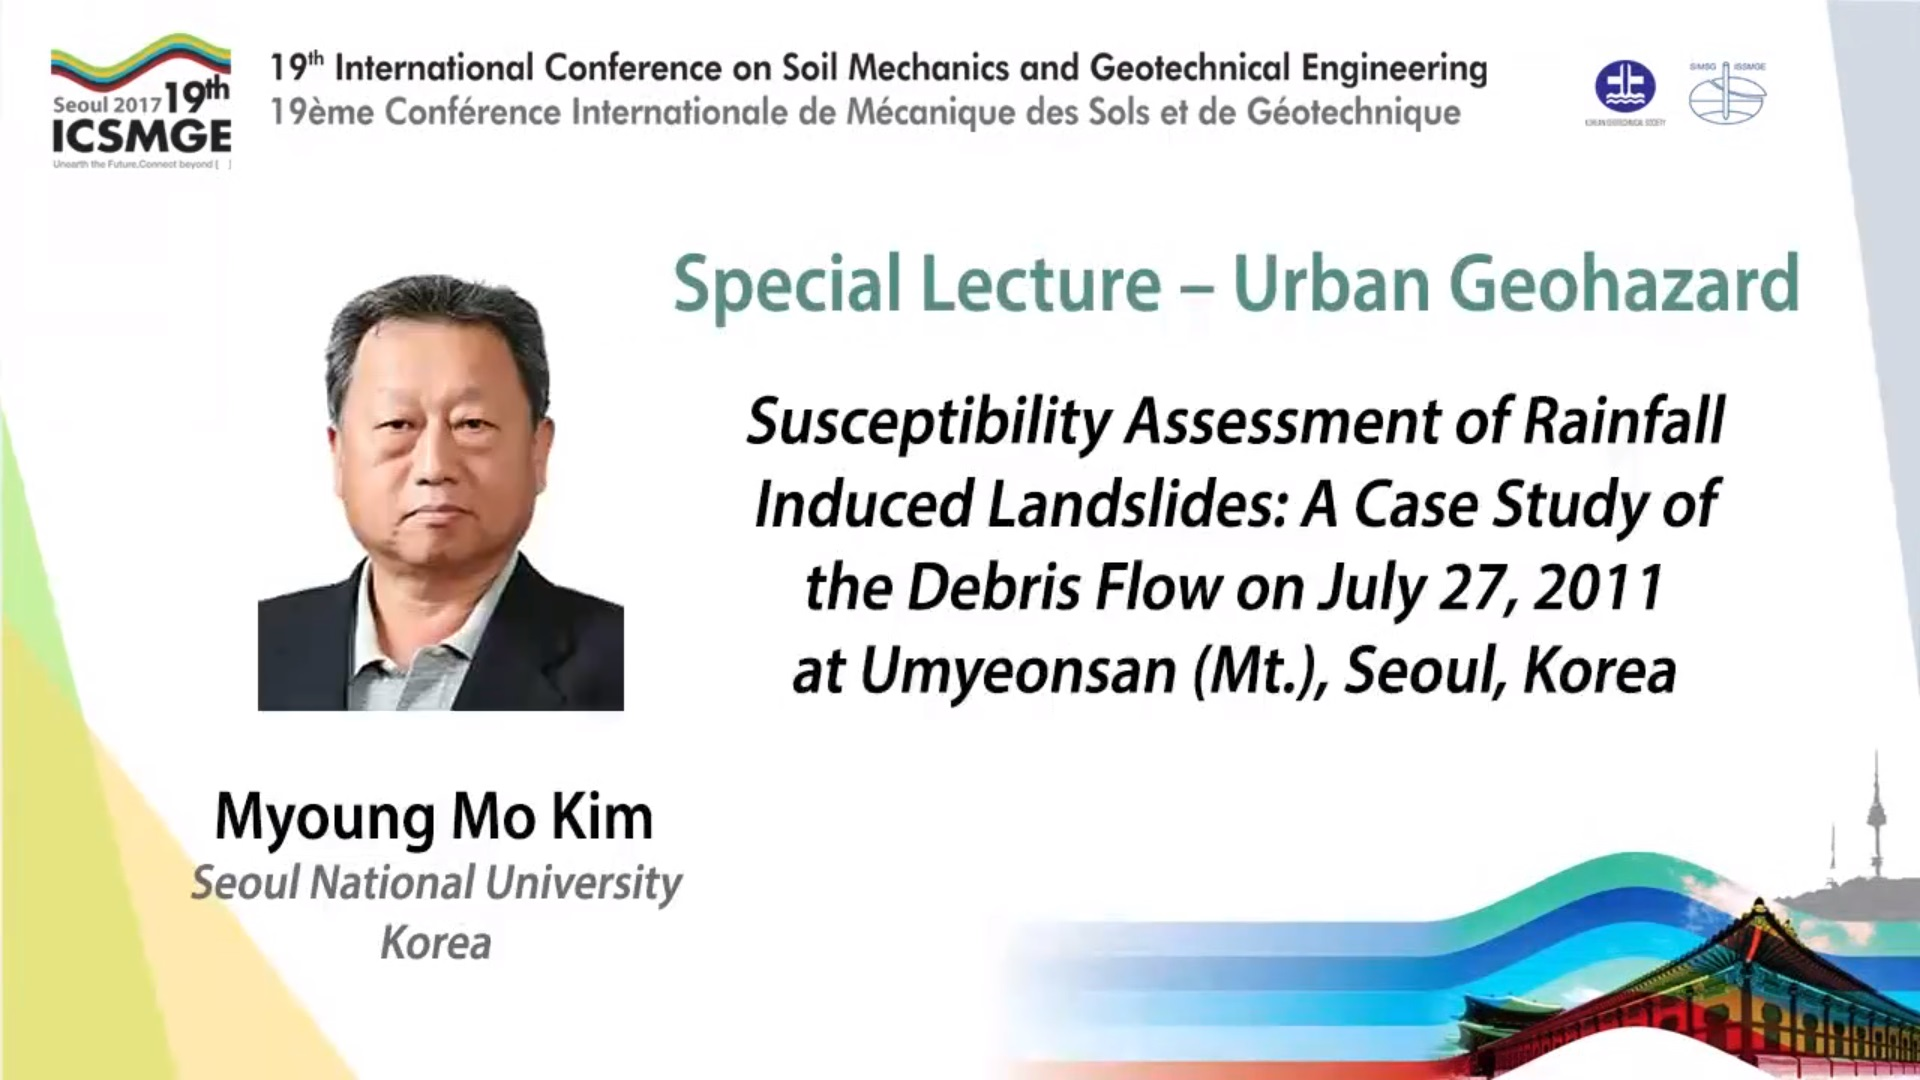 "Susceptibility Assessment of Rainfall Induced Landslides: A Case Study of the Debris Flow on July 27, 2011 at Umyeonsan (Mt.), Seoul, Korea (Urban Geohazard Special Lecture - 19th ICSMGE) {""category"":""honour_lecture"",""subjects"":[""Landslides""],""number"":""ICSMGE19109"",""instructors"":[""Myoung Mo Kim""]}"